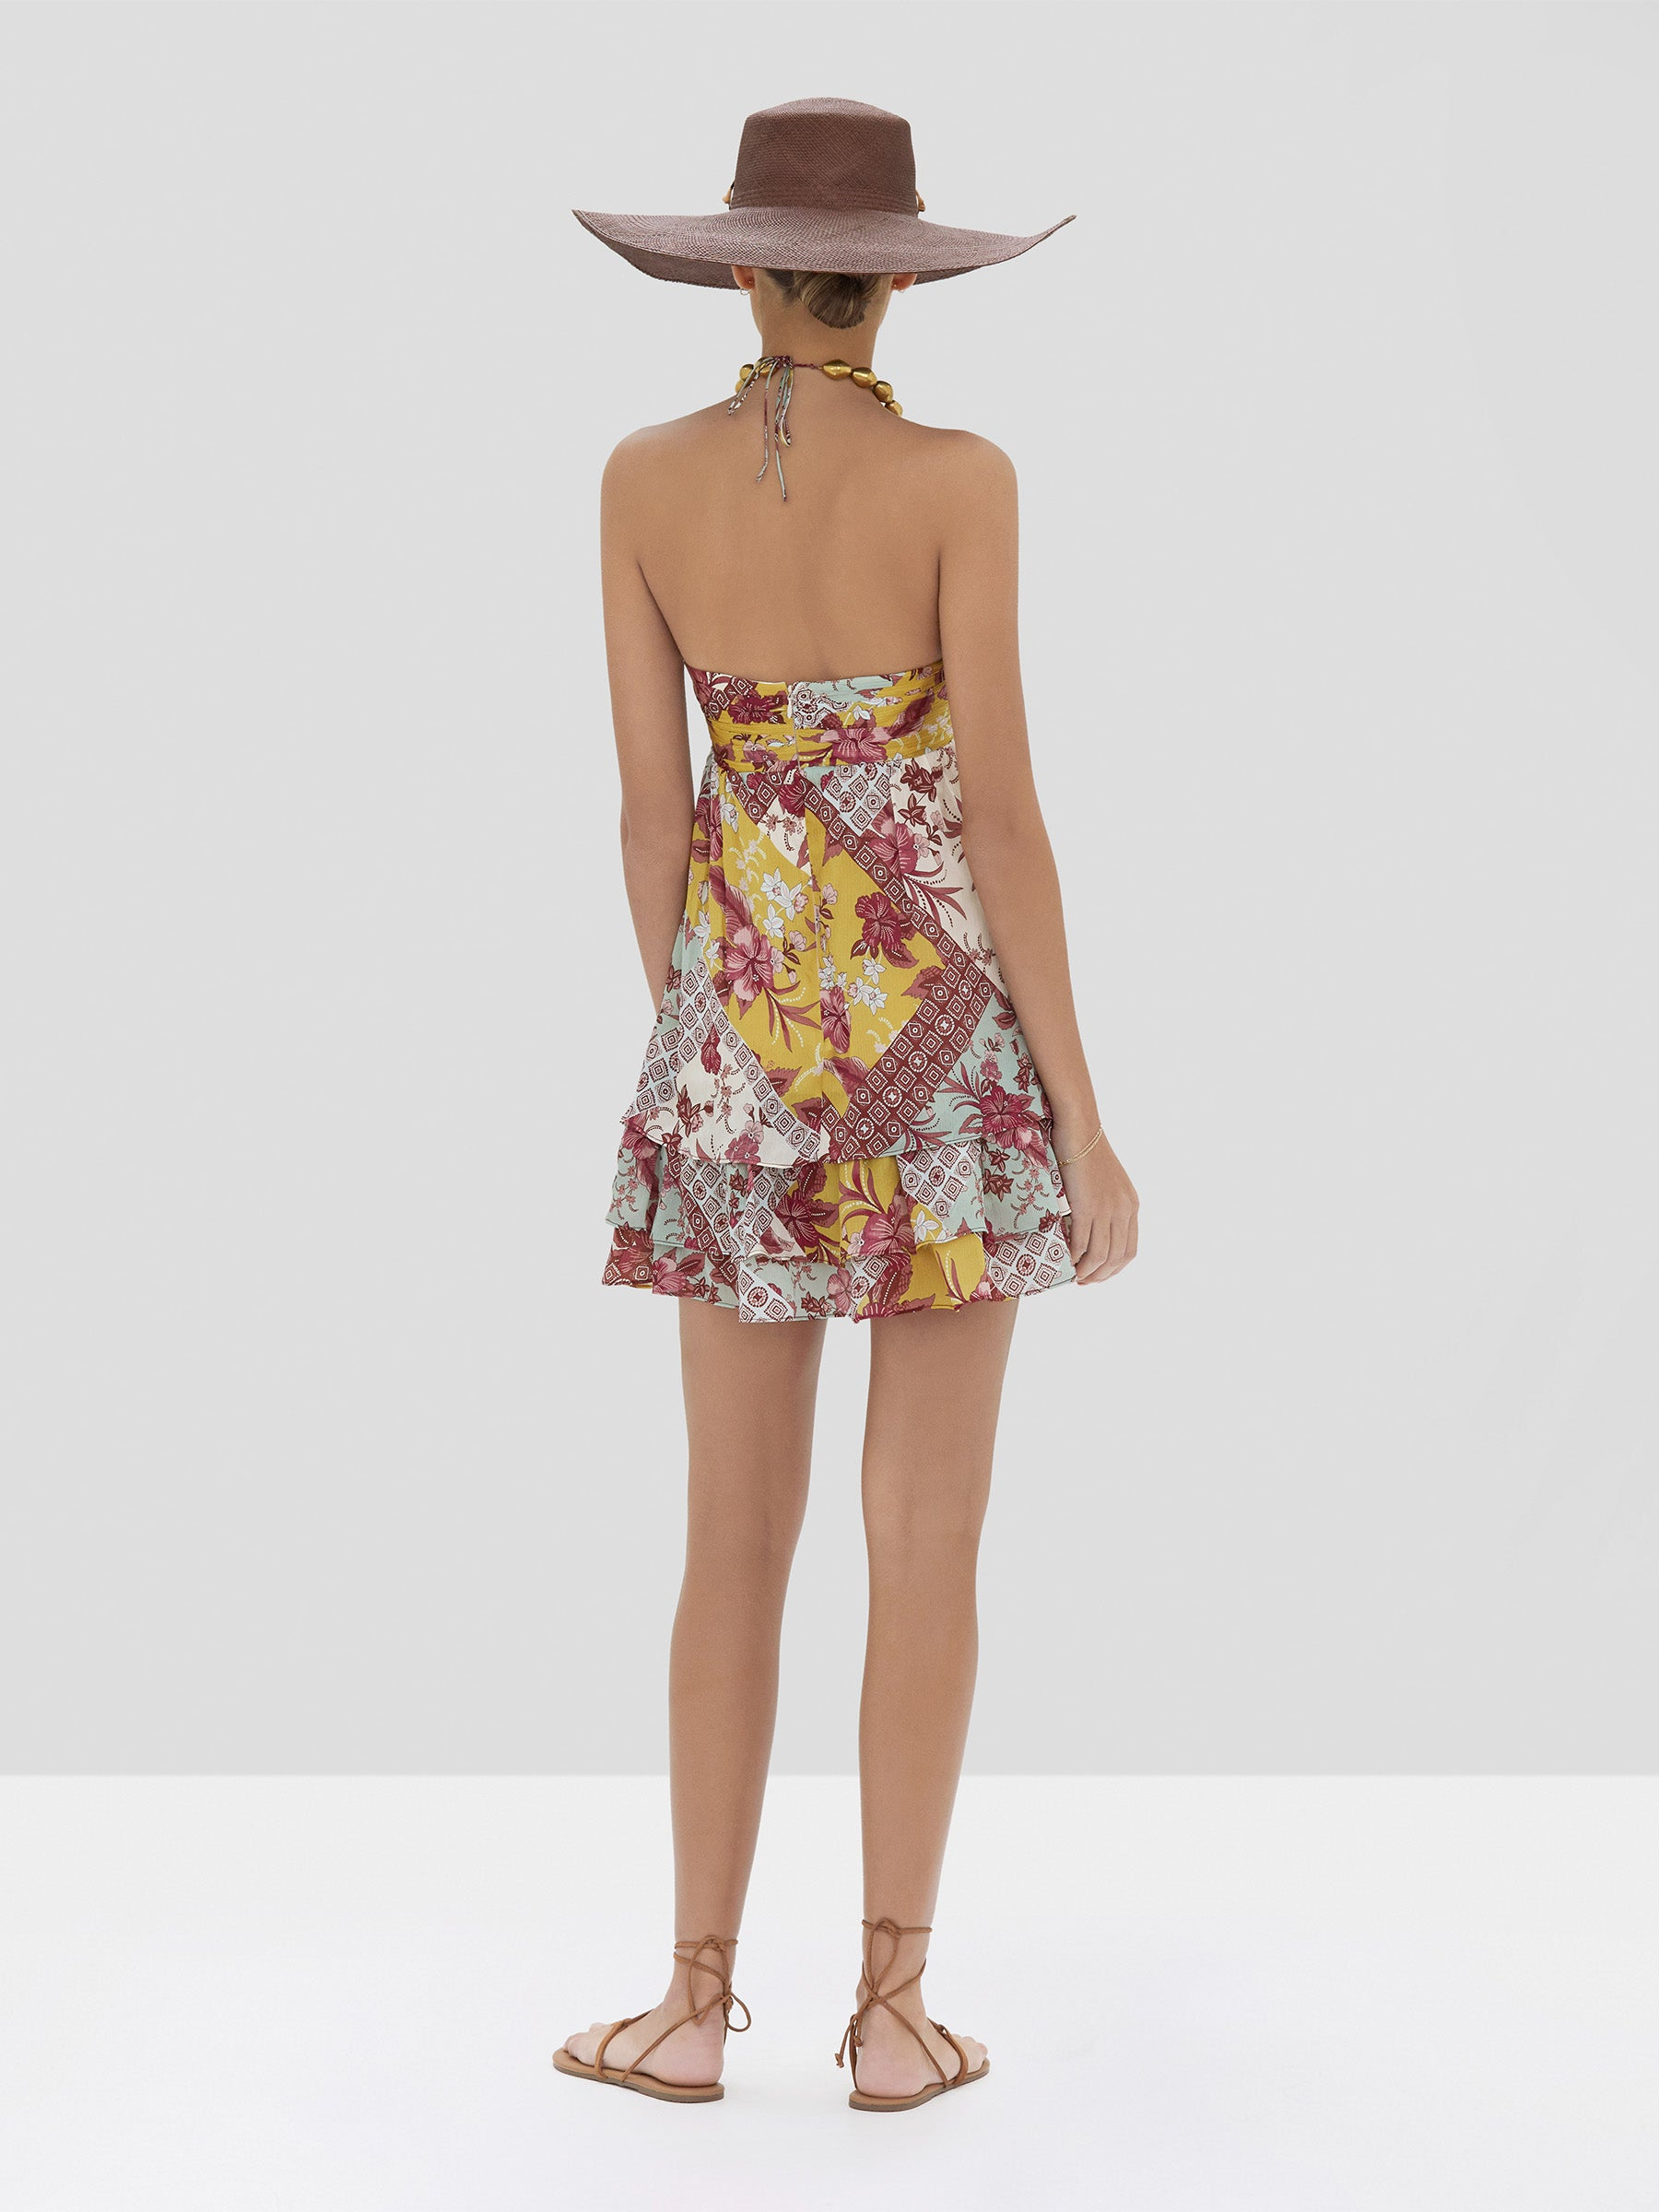 Alexis Irati Dress in Berry Foulard from the Spring Summer 2020 Collection - Rear View